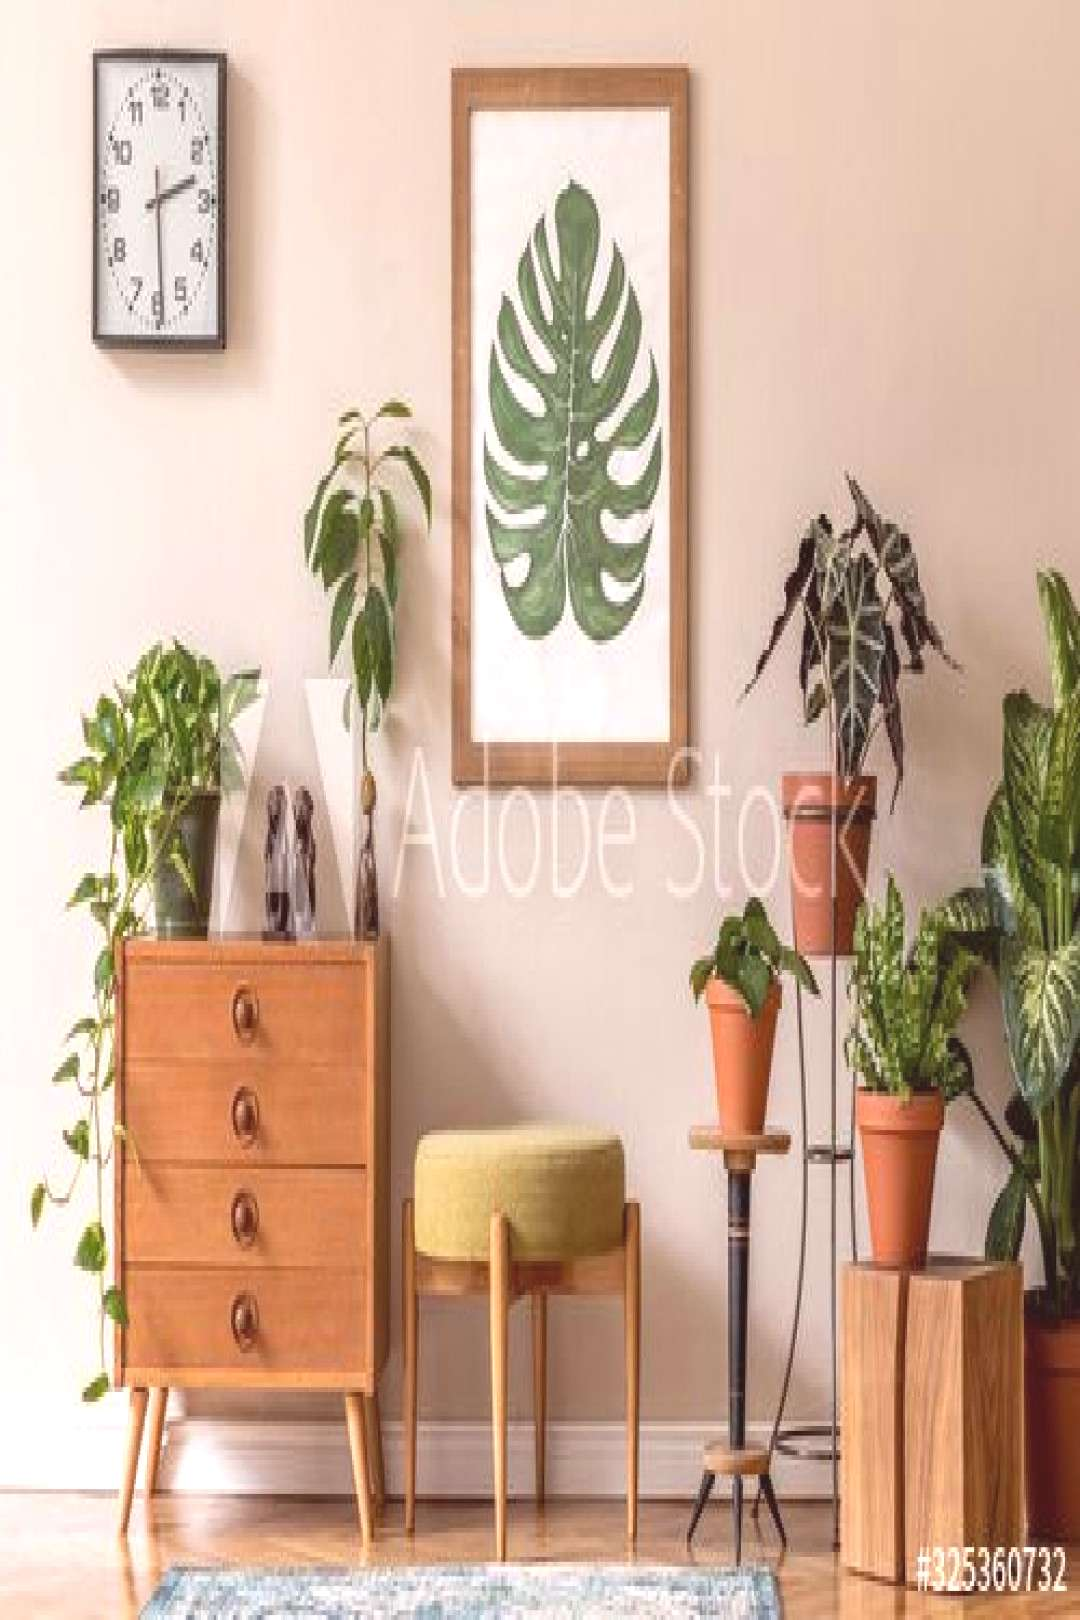 Vintage interior design of living room with stylish retro furnitures, a lot of plants, commode, bla